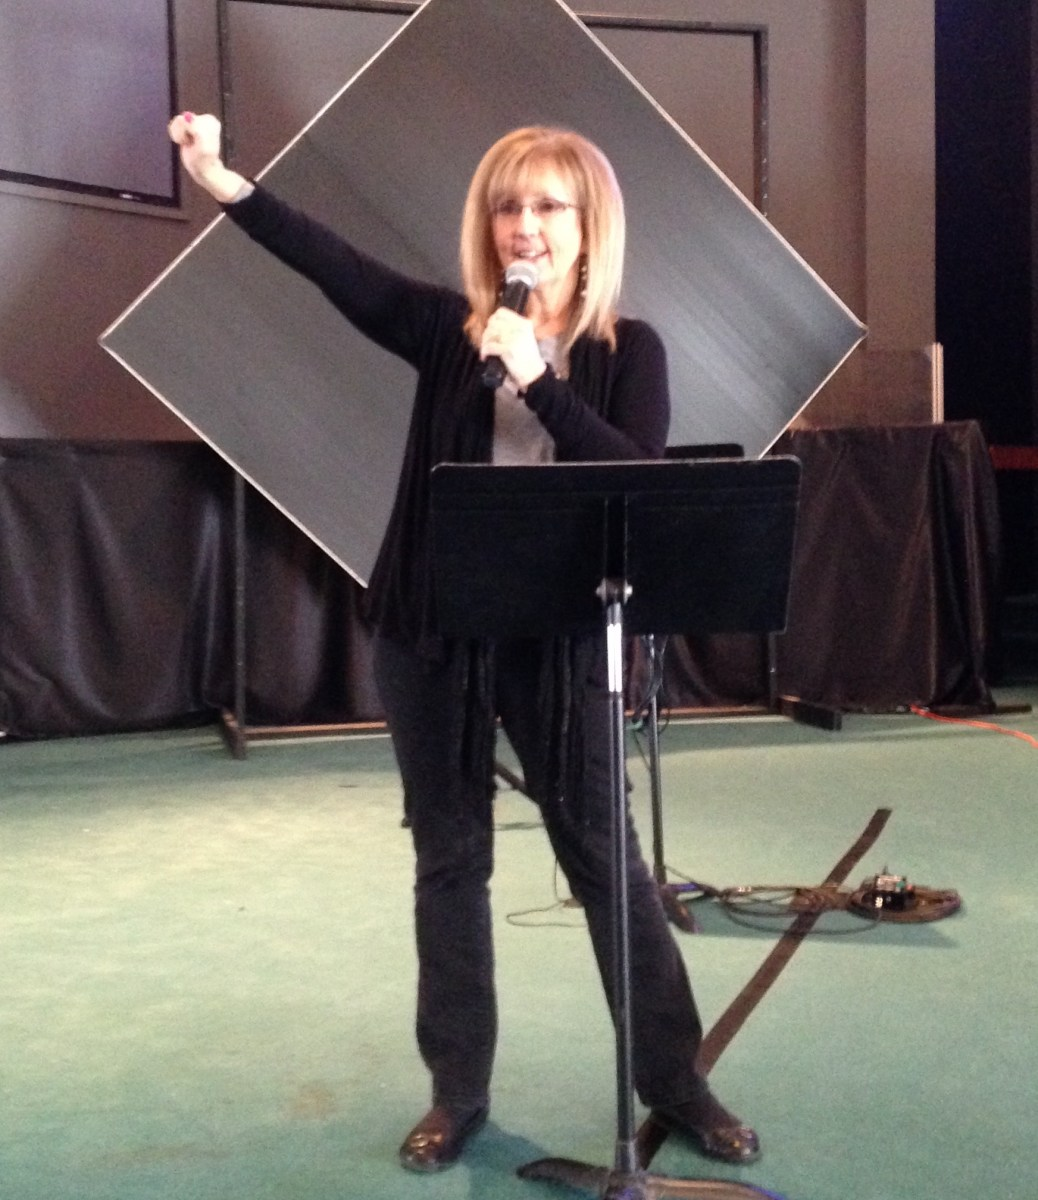 Teaming with Pastors for Healthy Churches